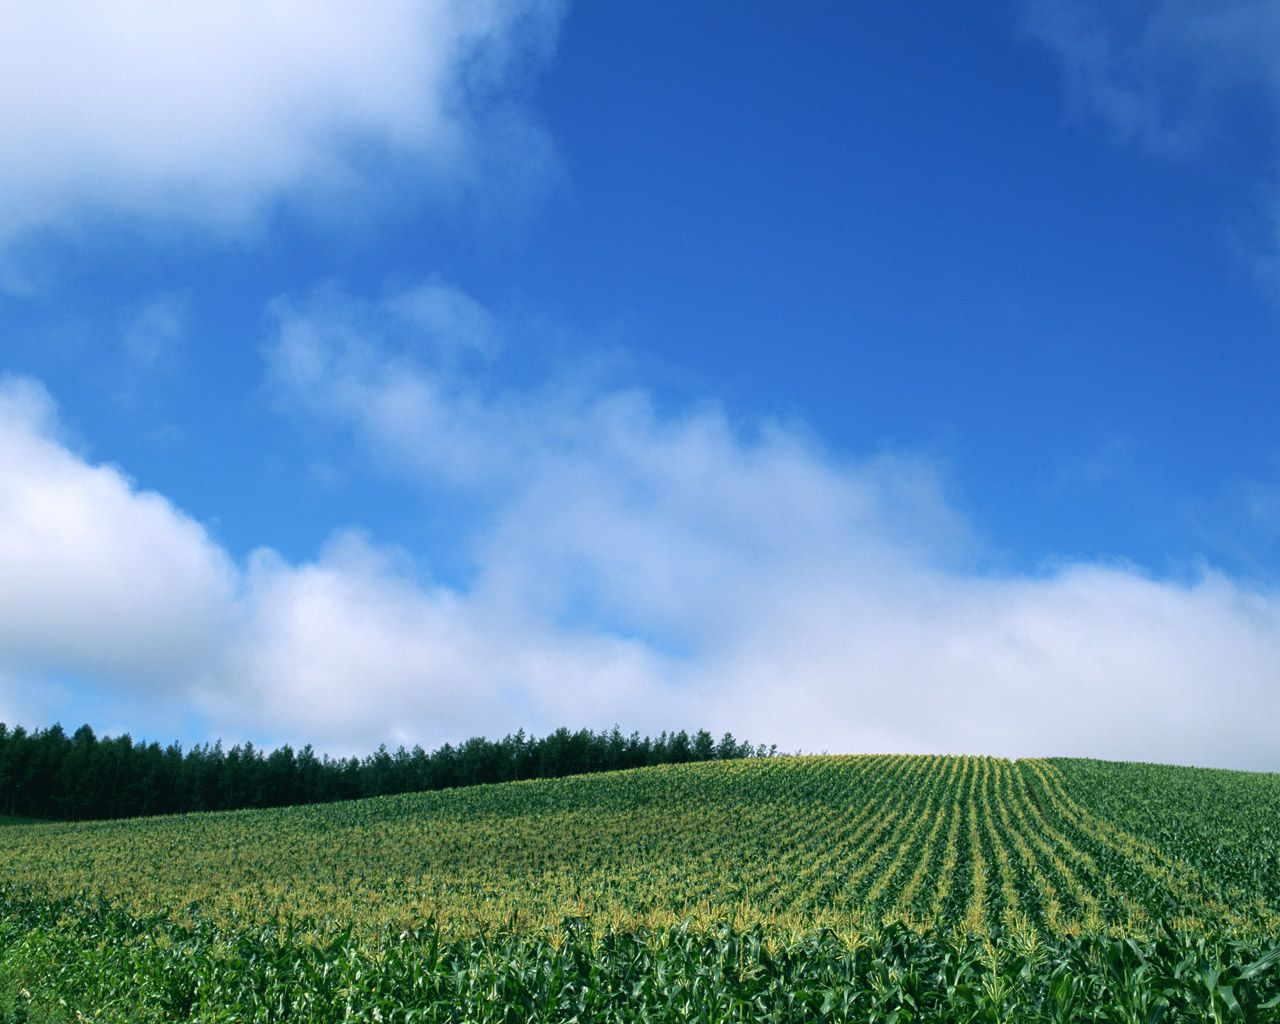 Blue and white wallpaper 7997 - Green sky - Landscape scenery